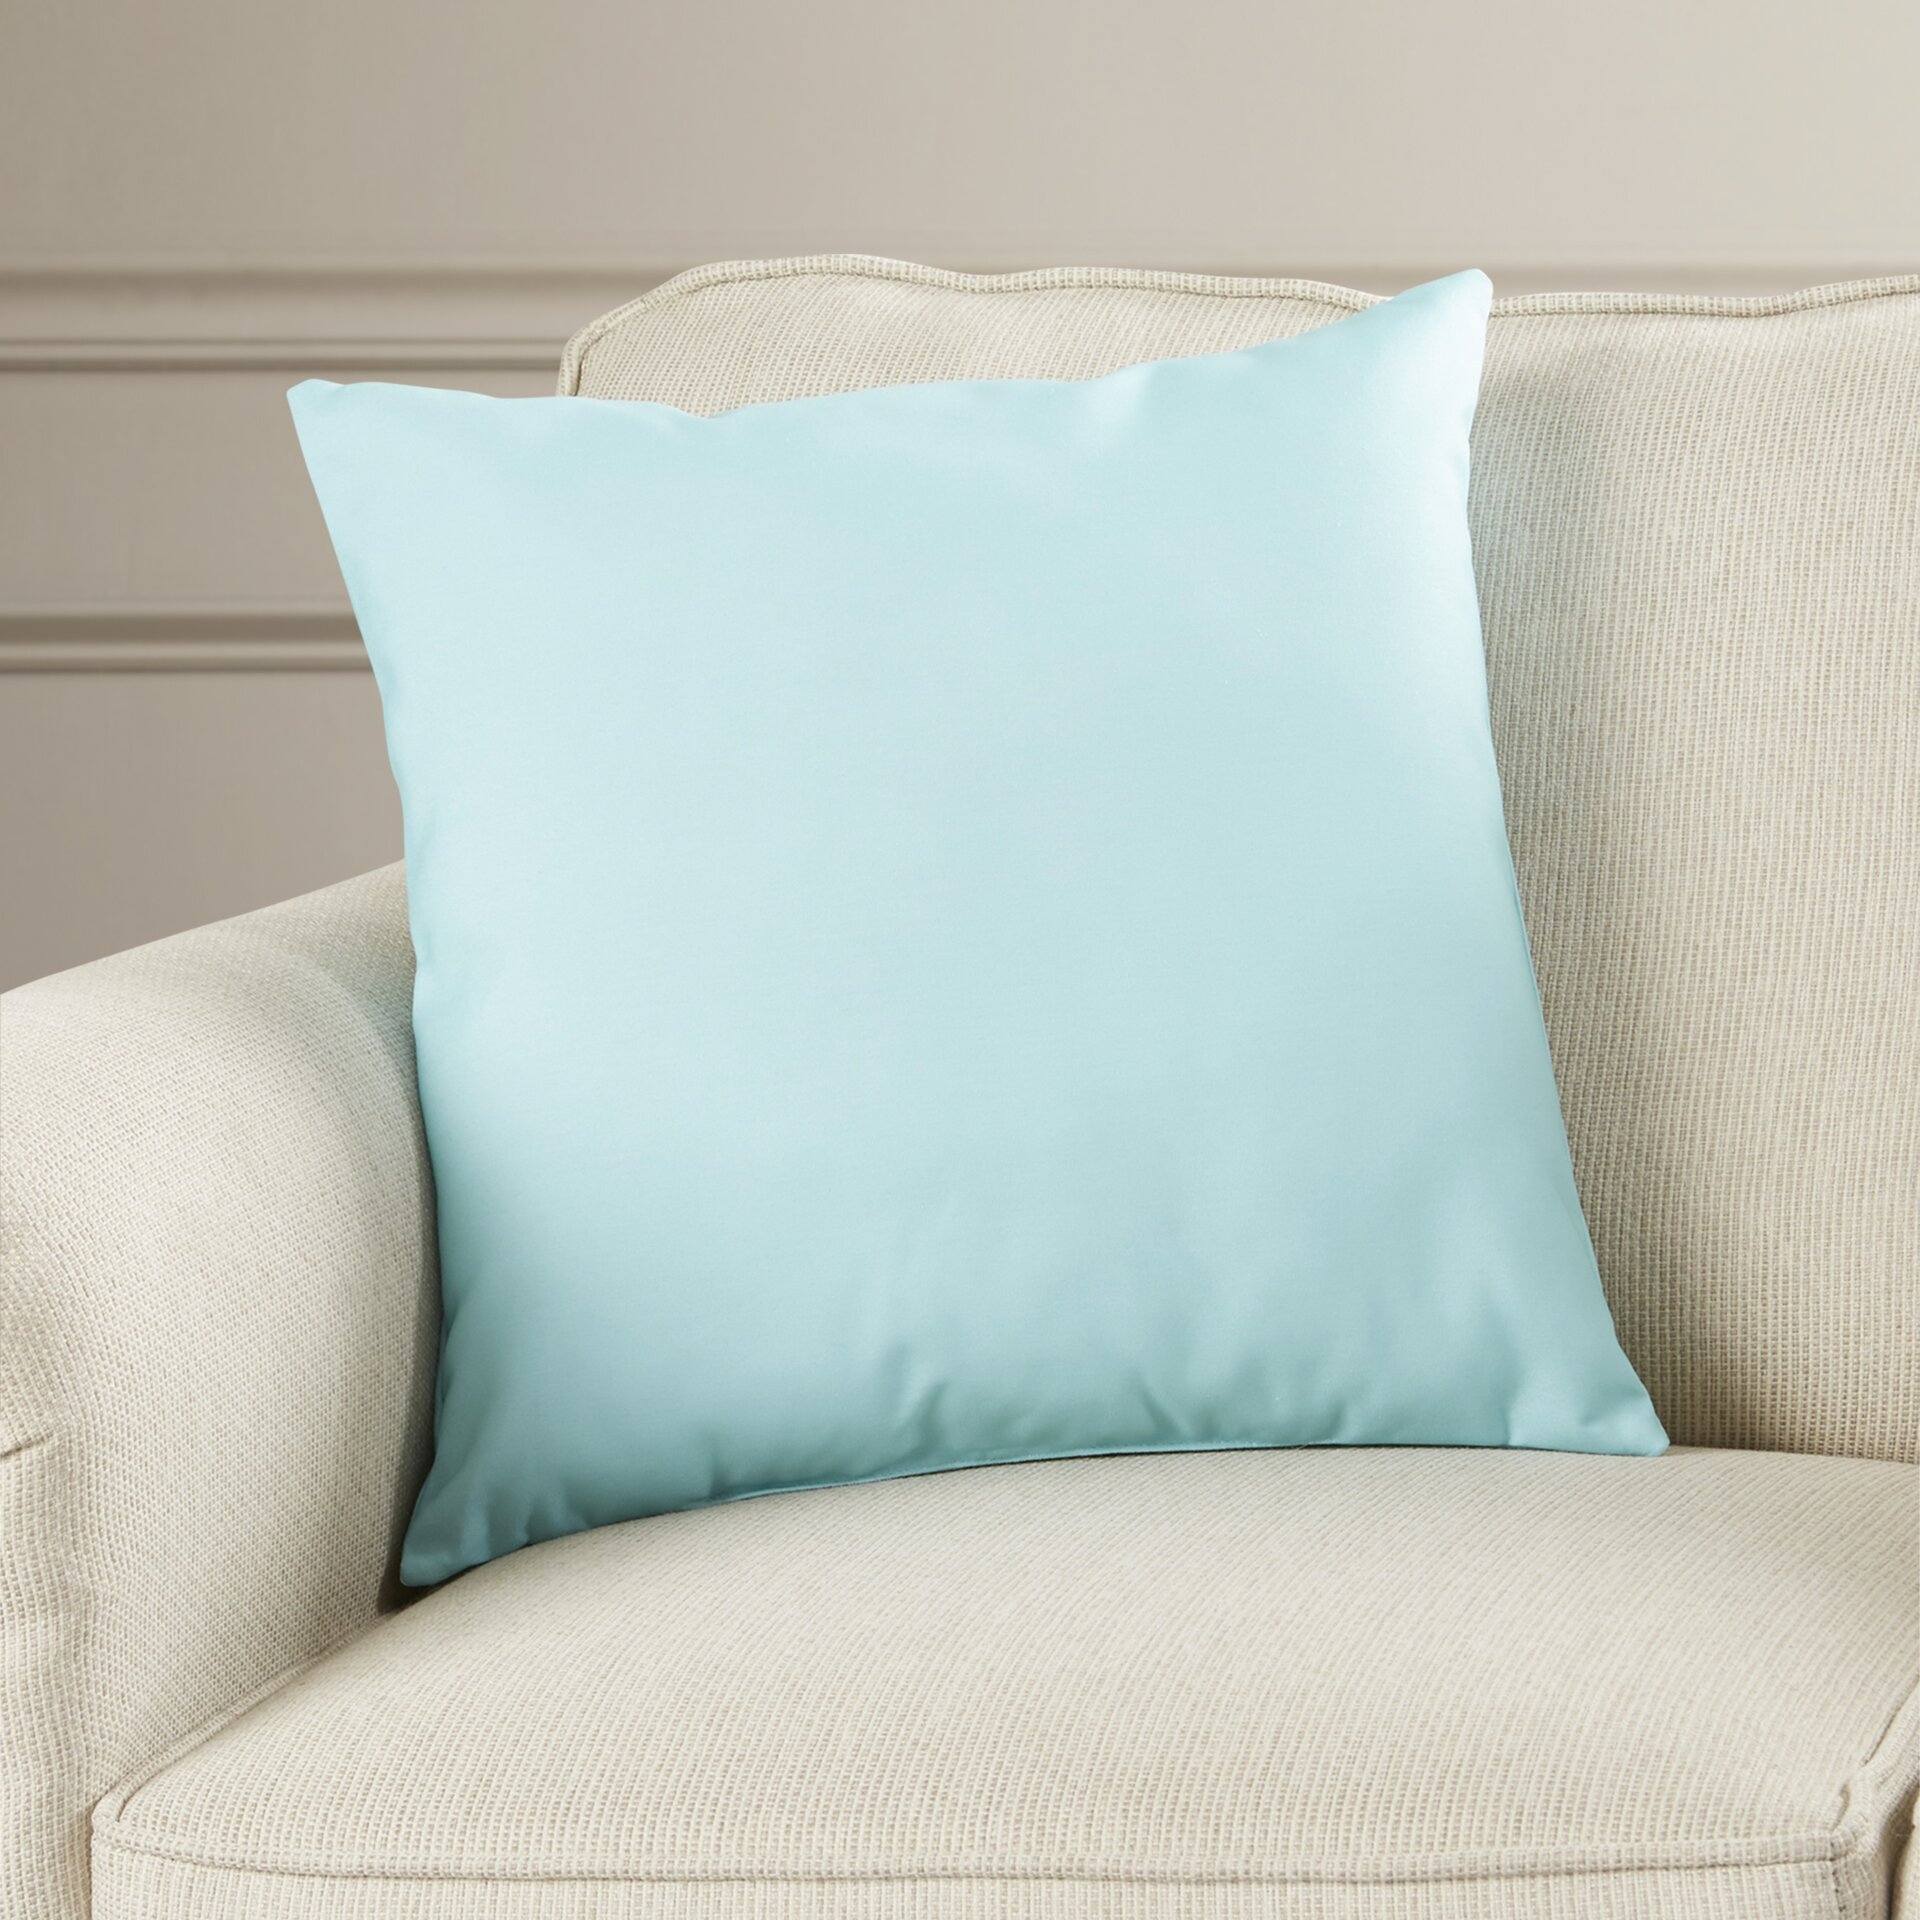 Decorative Pillows Linen : Charlton Home Ballard Linen Throw Pillow & Reviews Wayfair